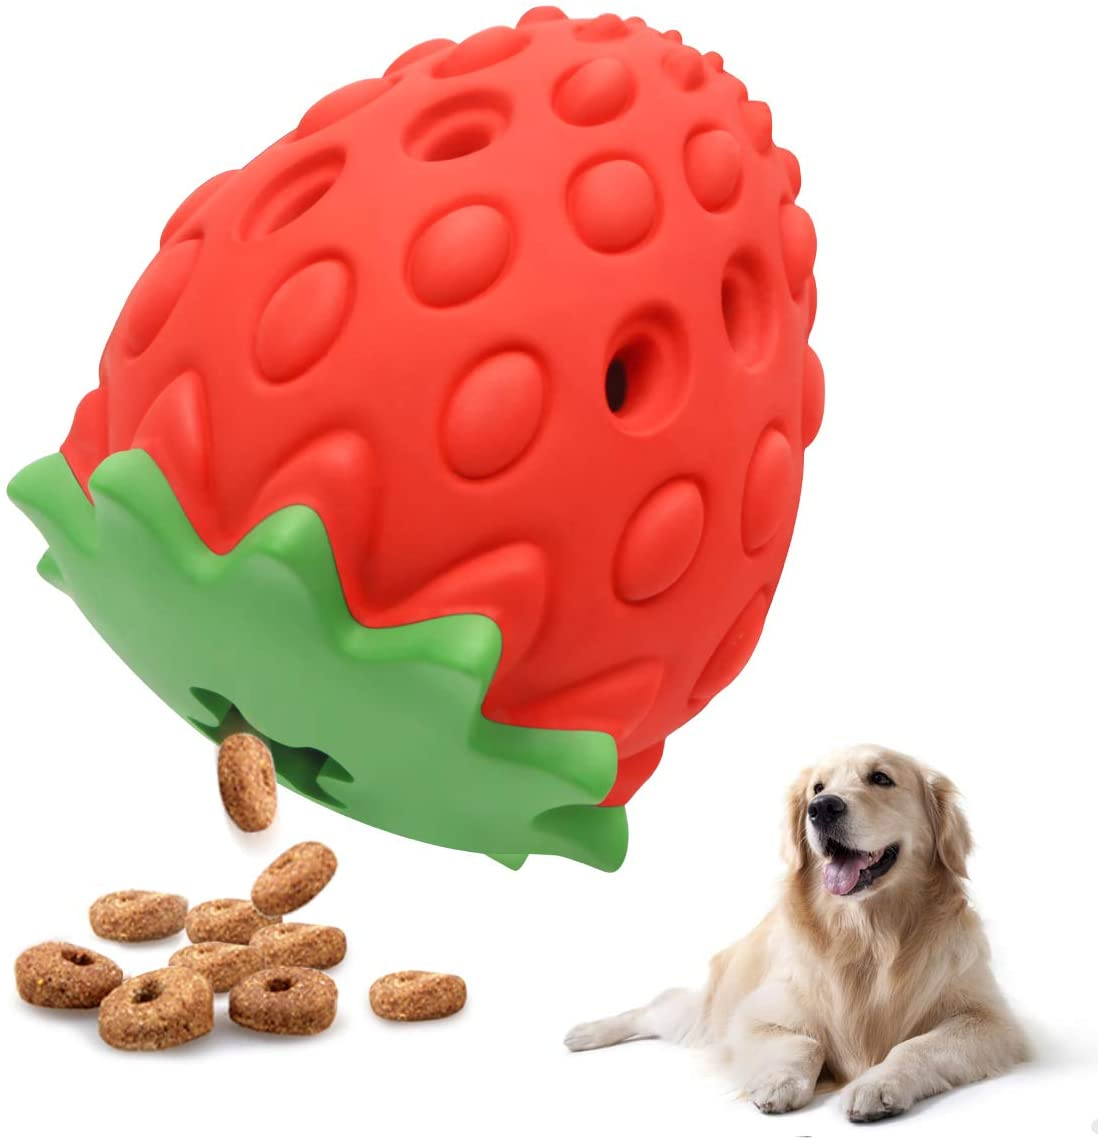 ROYALITA Strawberry Dog Toys for Aggressive chewers Large Breed, Dog Dental Toy Tough Durable Dog Toys Indestructible for Small/Medium/Large Dogs, Puppy Chew Toys for Retrieving and Training